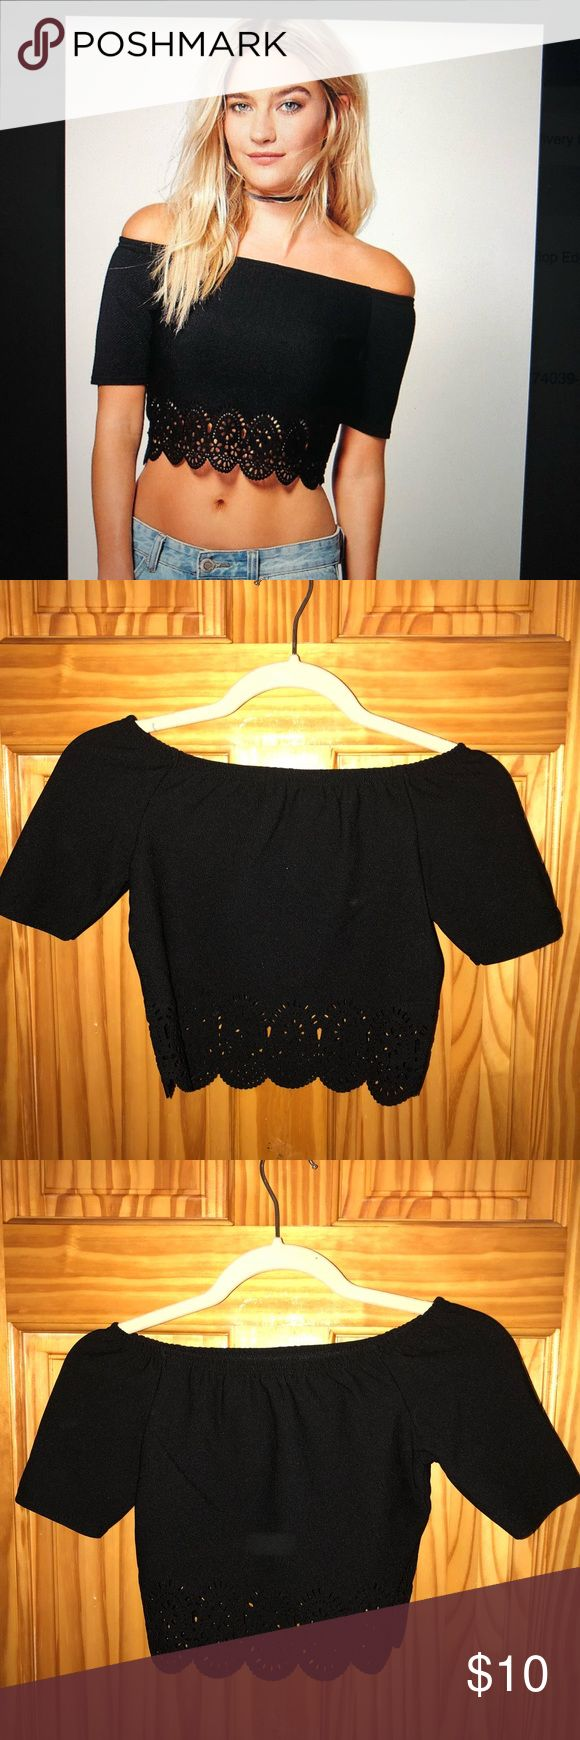 Sarah Laser Cut Scallop Edge Bardot Top A very cute off the shoulder scallop crop top!  Made in U.K.  95% Polyester 5% Elastane.  Fits a little tight.  UK Size 8, US Size 4. NEVER WORN THIS BEFORE but did take off the tag. Boohoo Tops Crop Tops